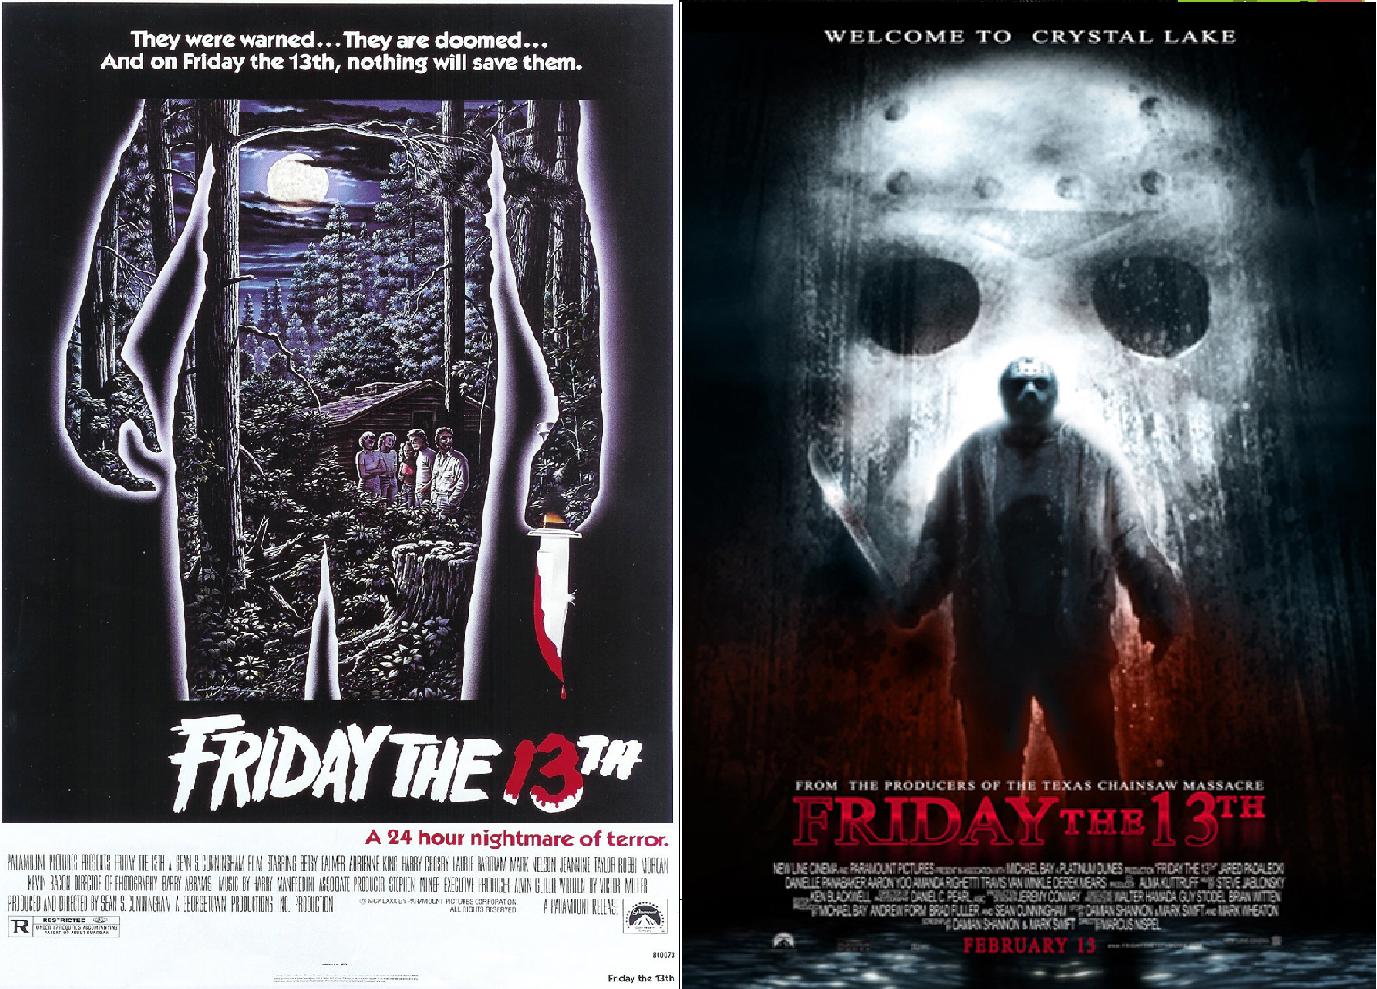 Movie poster remakes